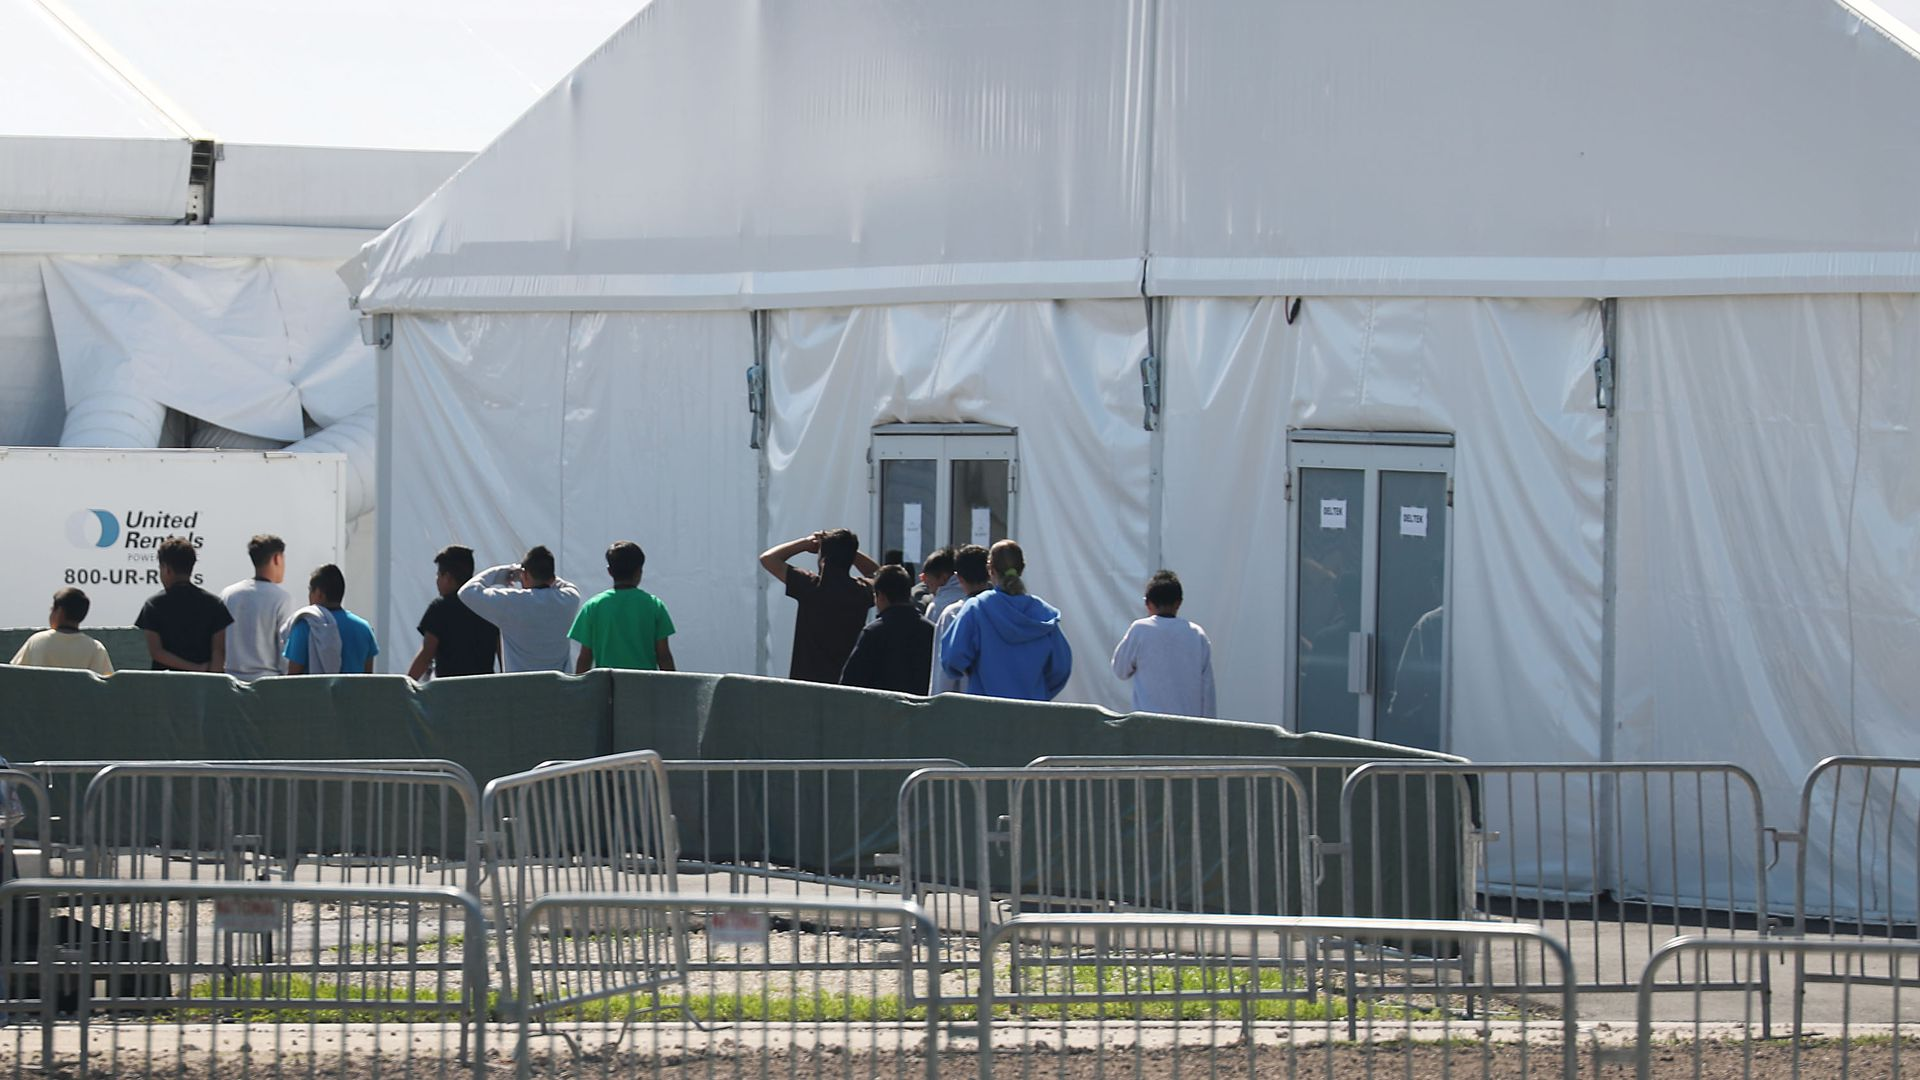 Children walk in a line out of a large white tent with double doors at the Homestead facility.